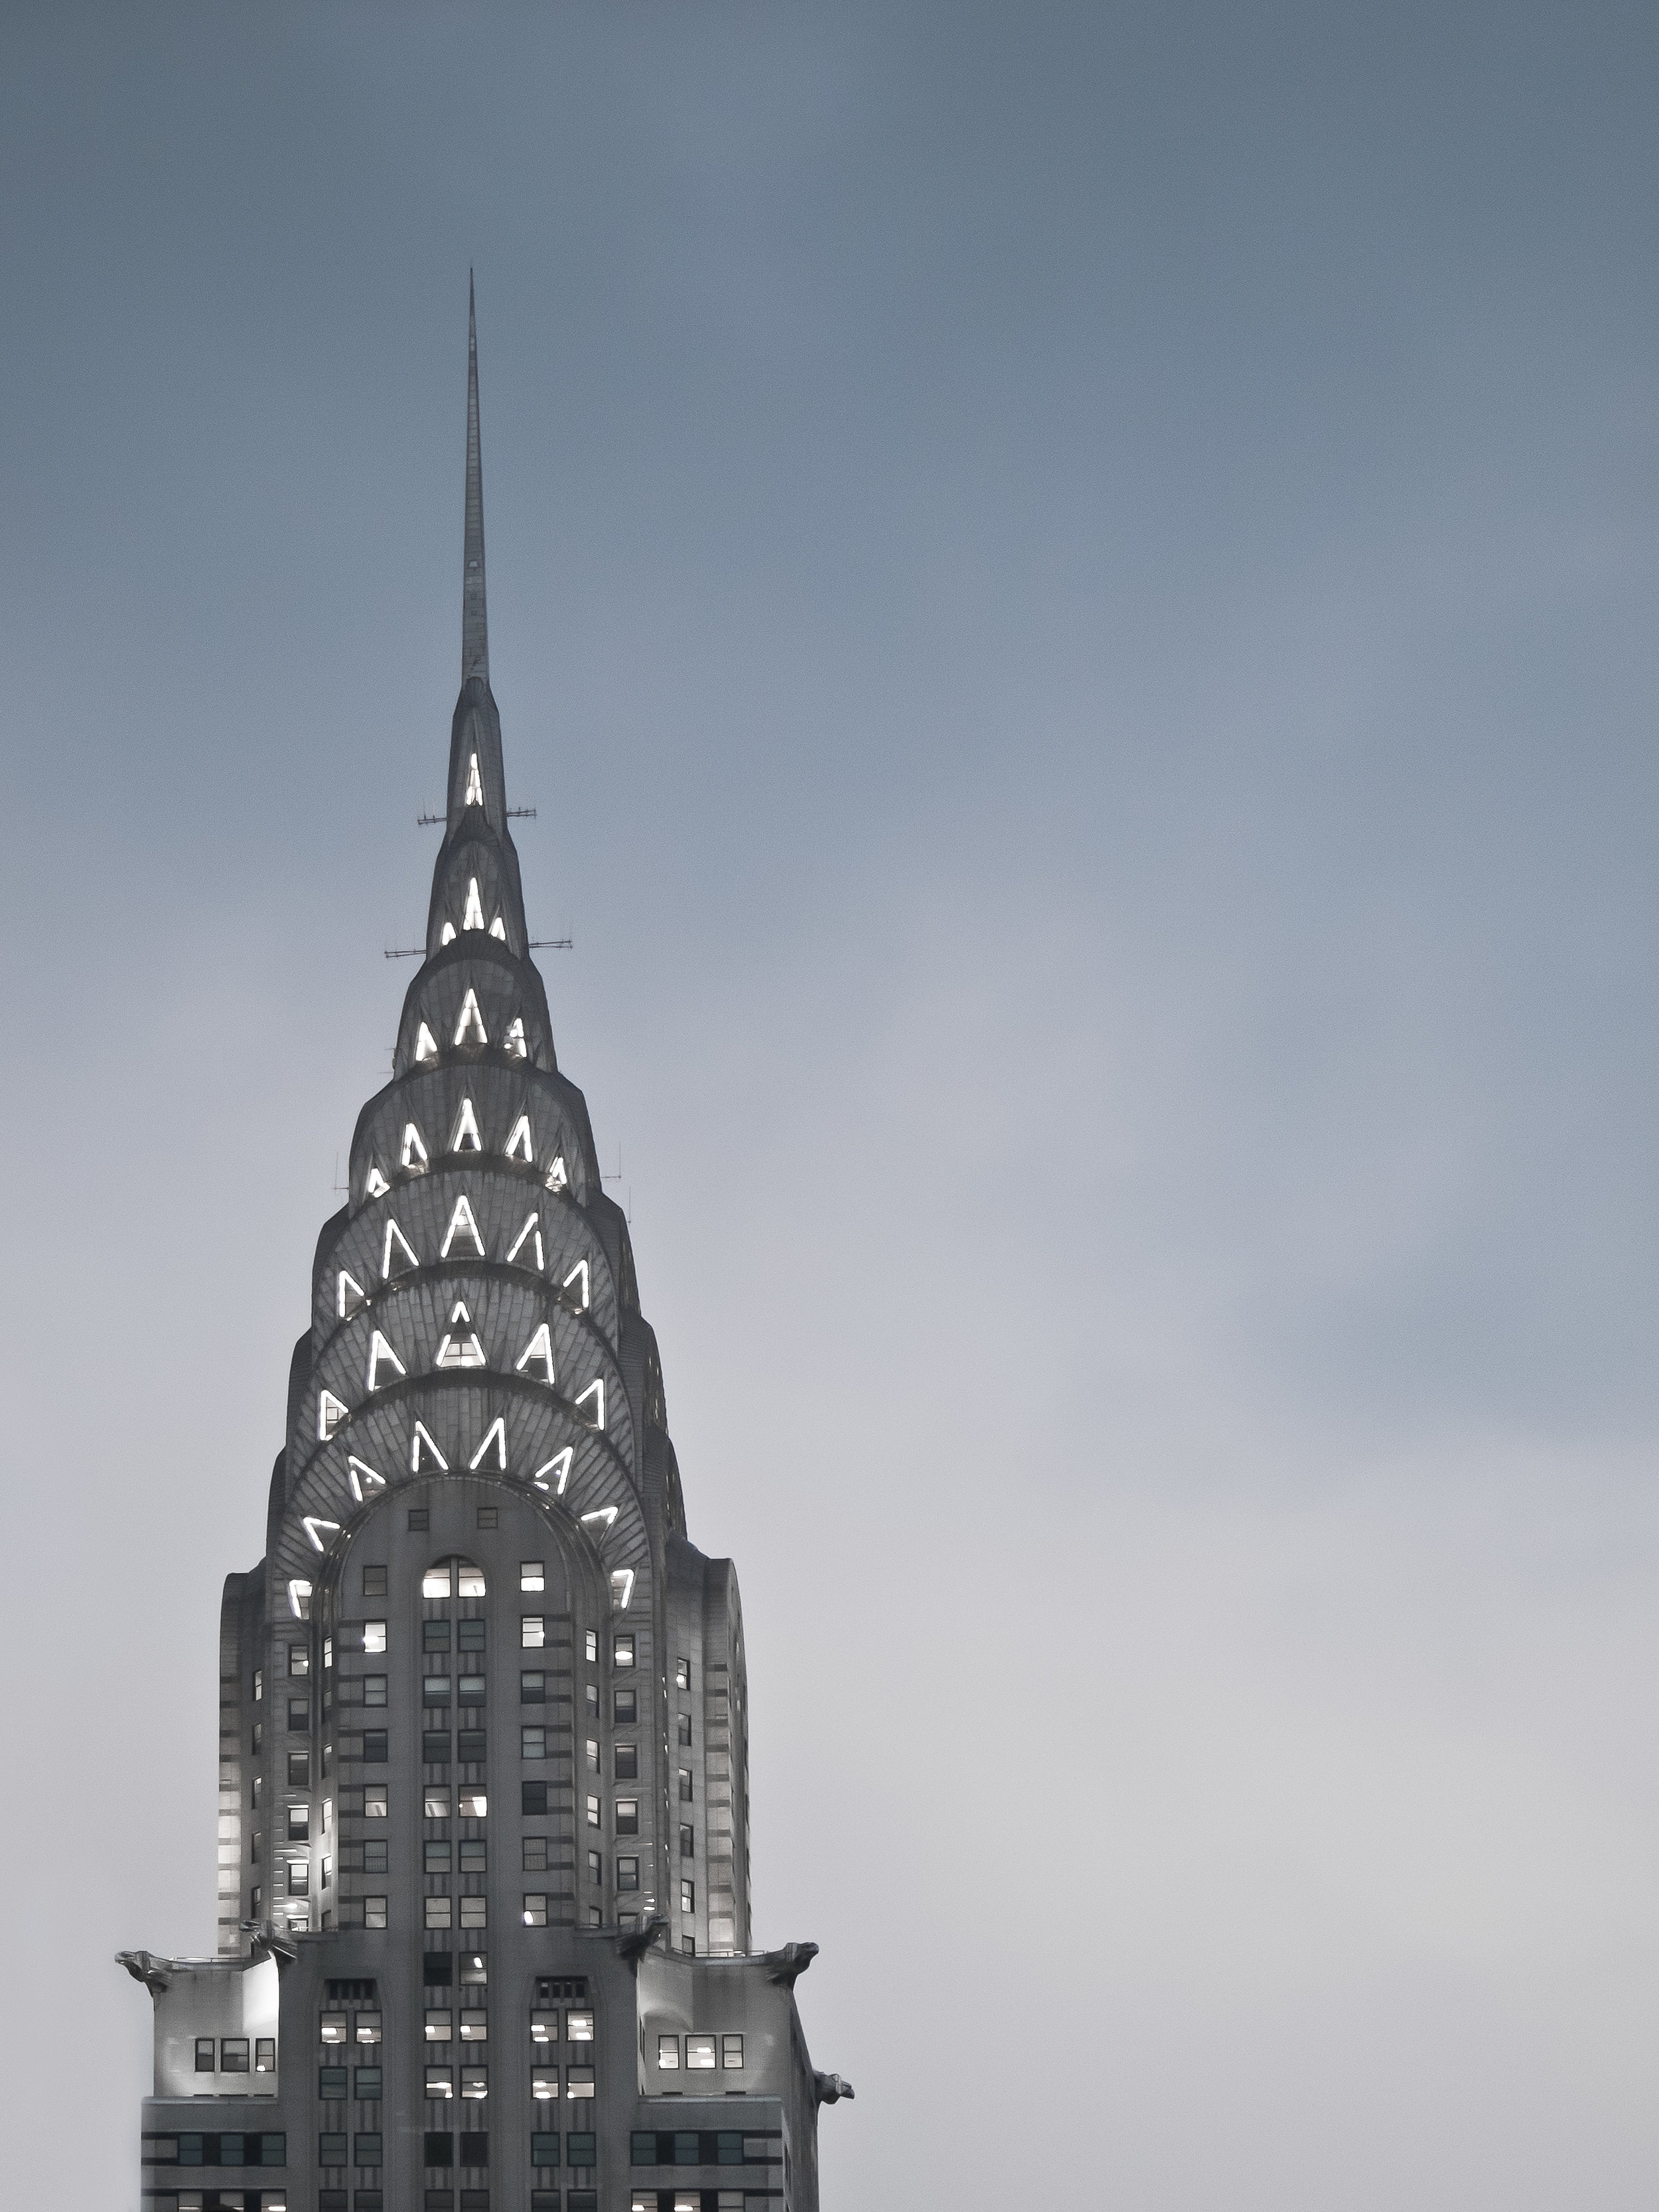 The Chrysler Building by Manolo Toledo - Downloaded from 500px.jpg